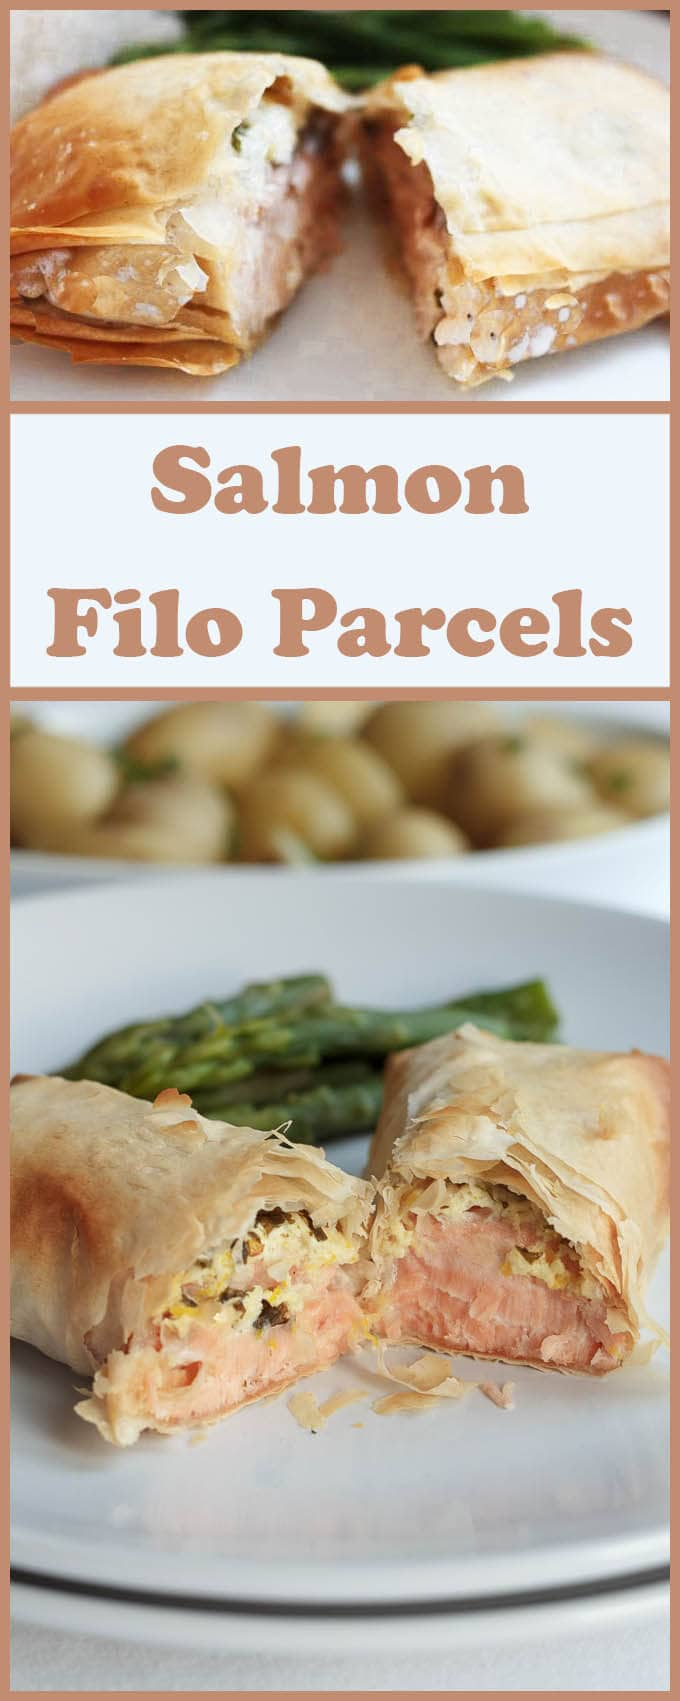 Salmon filo parcels are made from filo pastry. Not only is it much easier to roll than traditional pastry plus it doesn't have the high levels of saturated fat! This recipe is an ideal addition to your quick healthy meals!